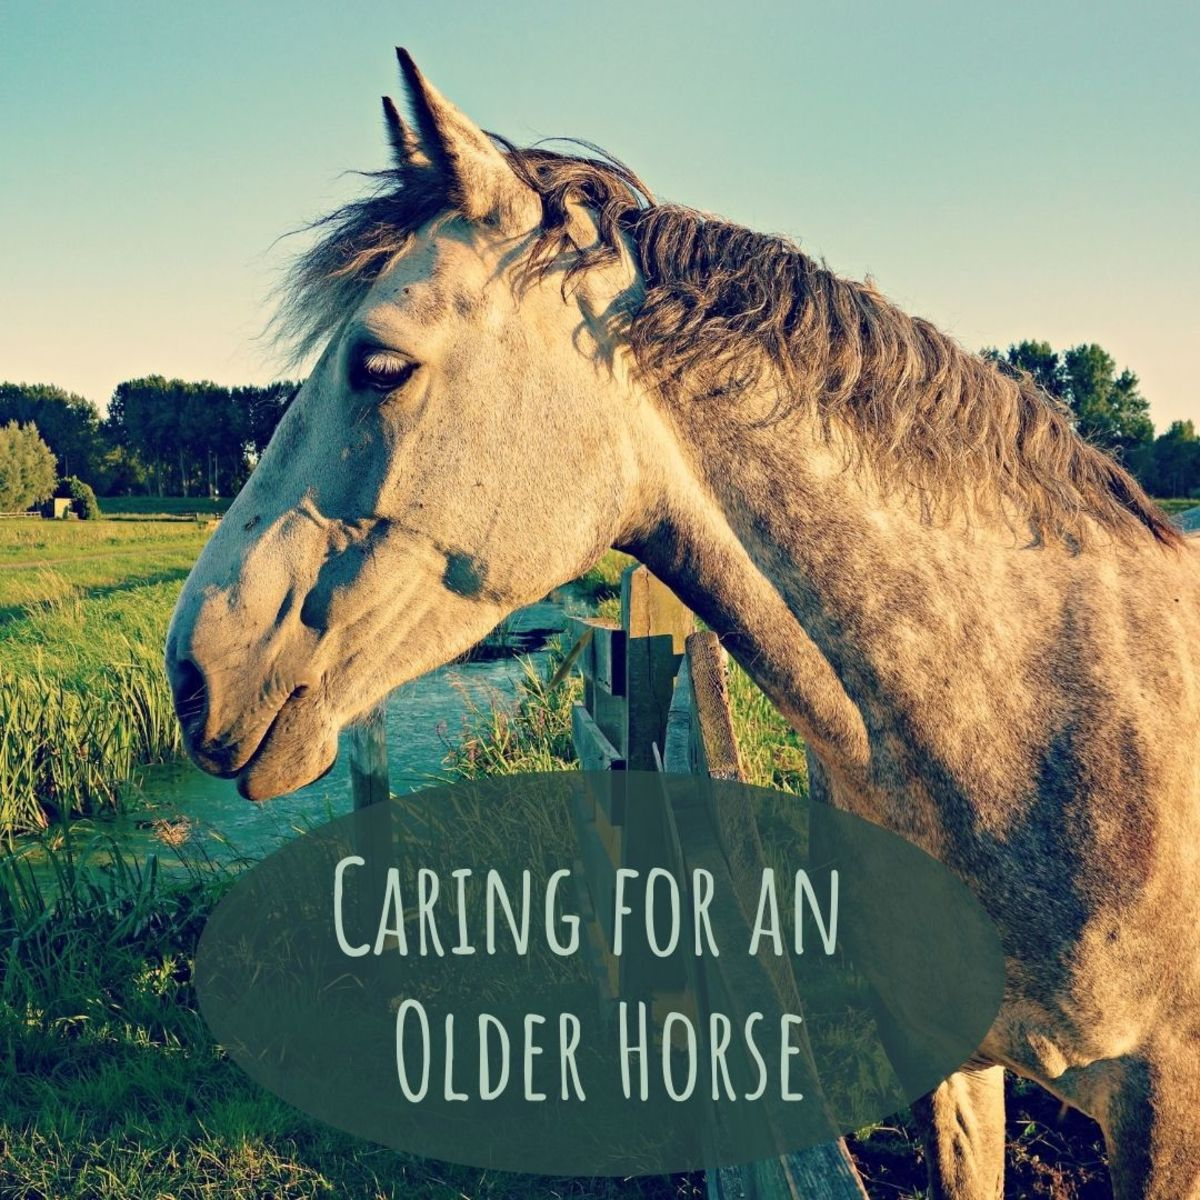 Older horses may need special care—here are five tips for caring for senior horses.